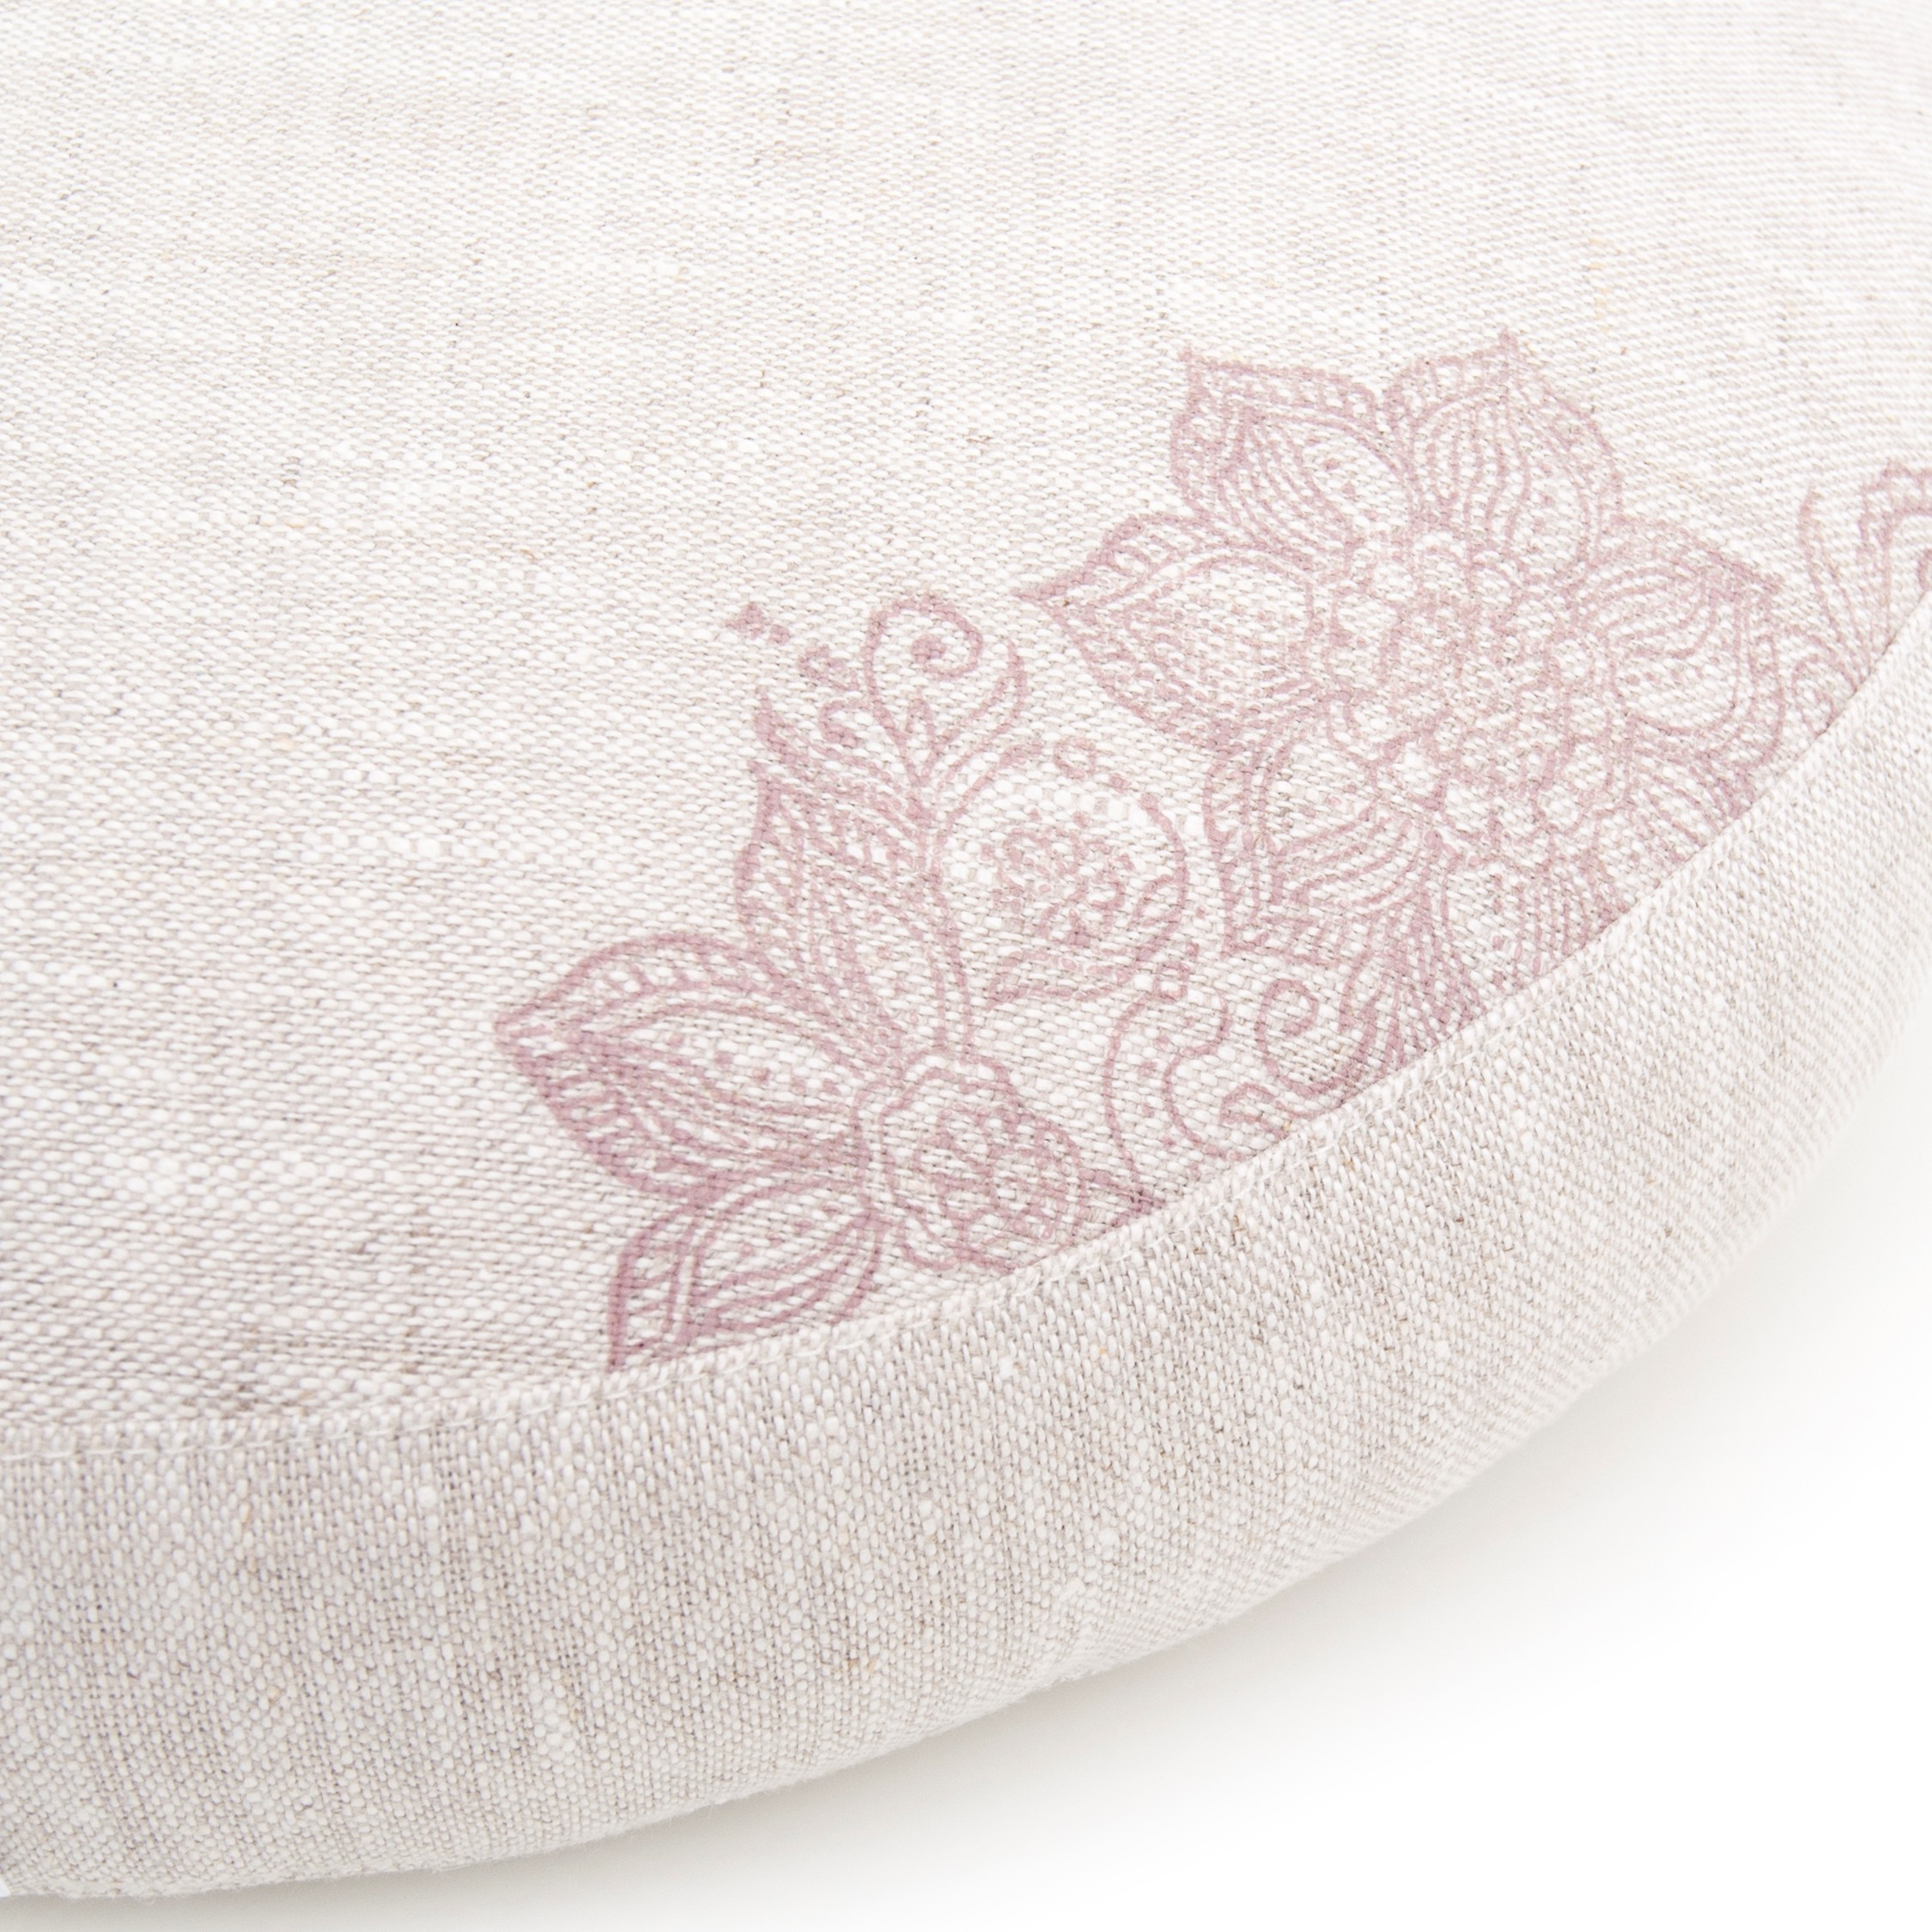 Meditation cushion, natural flax linen.